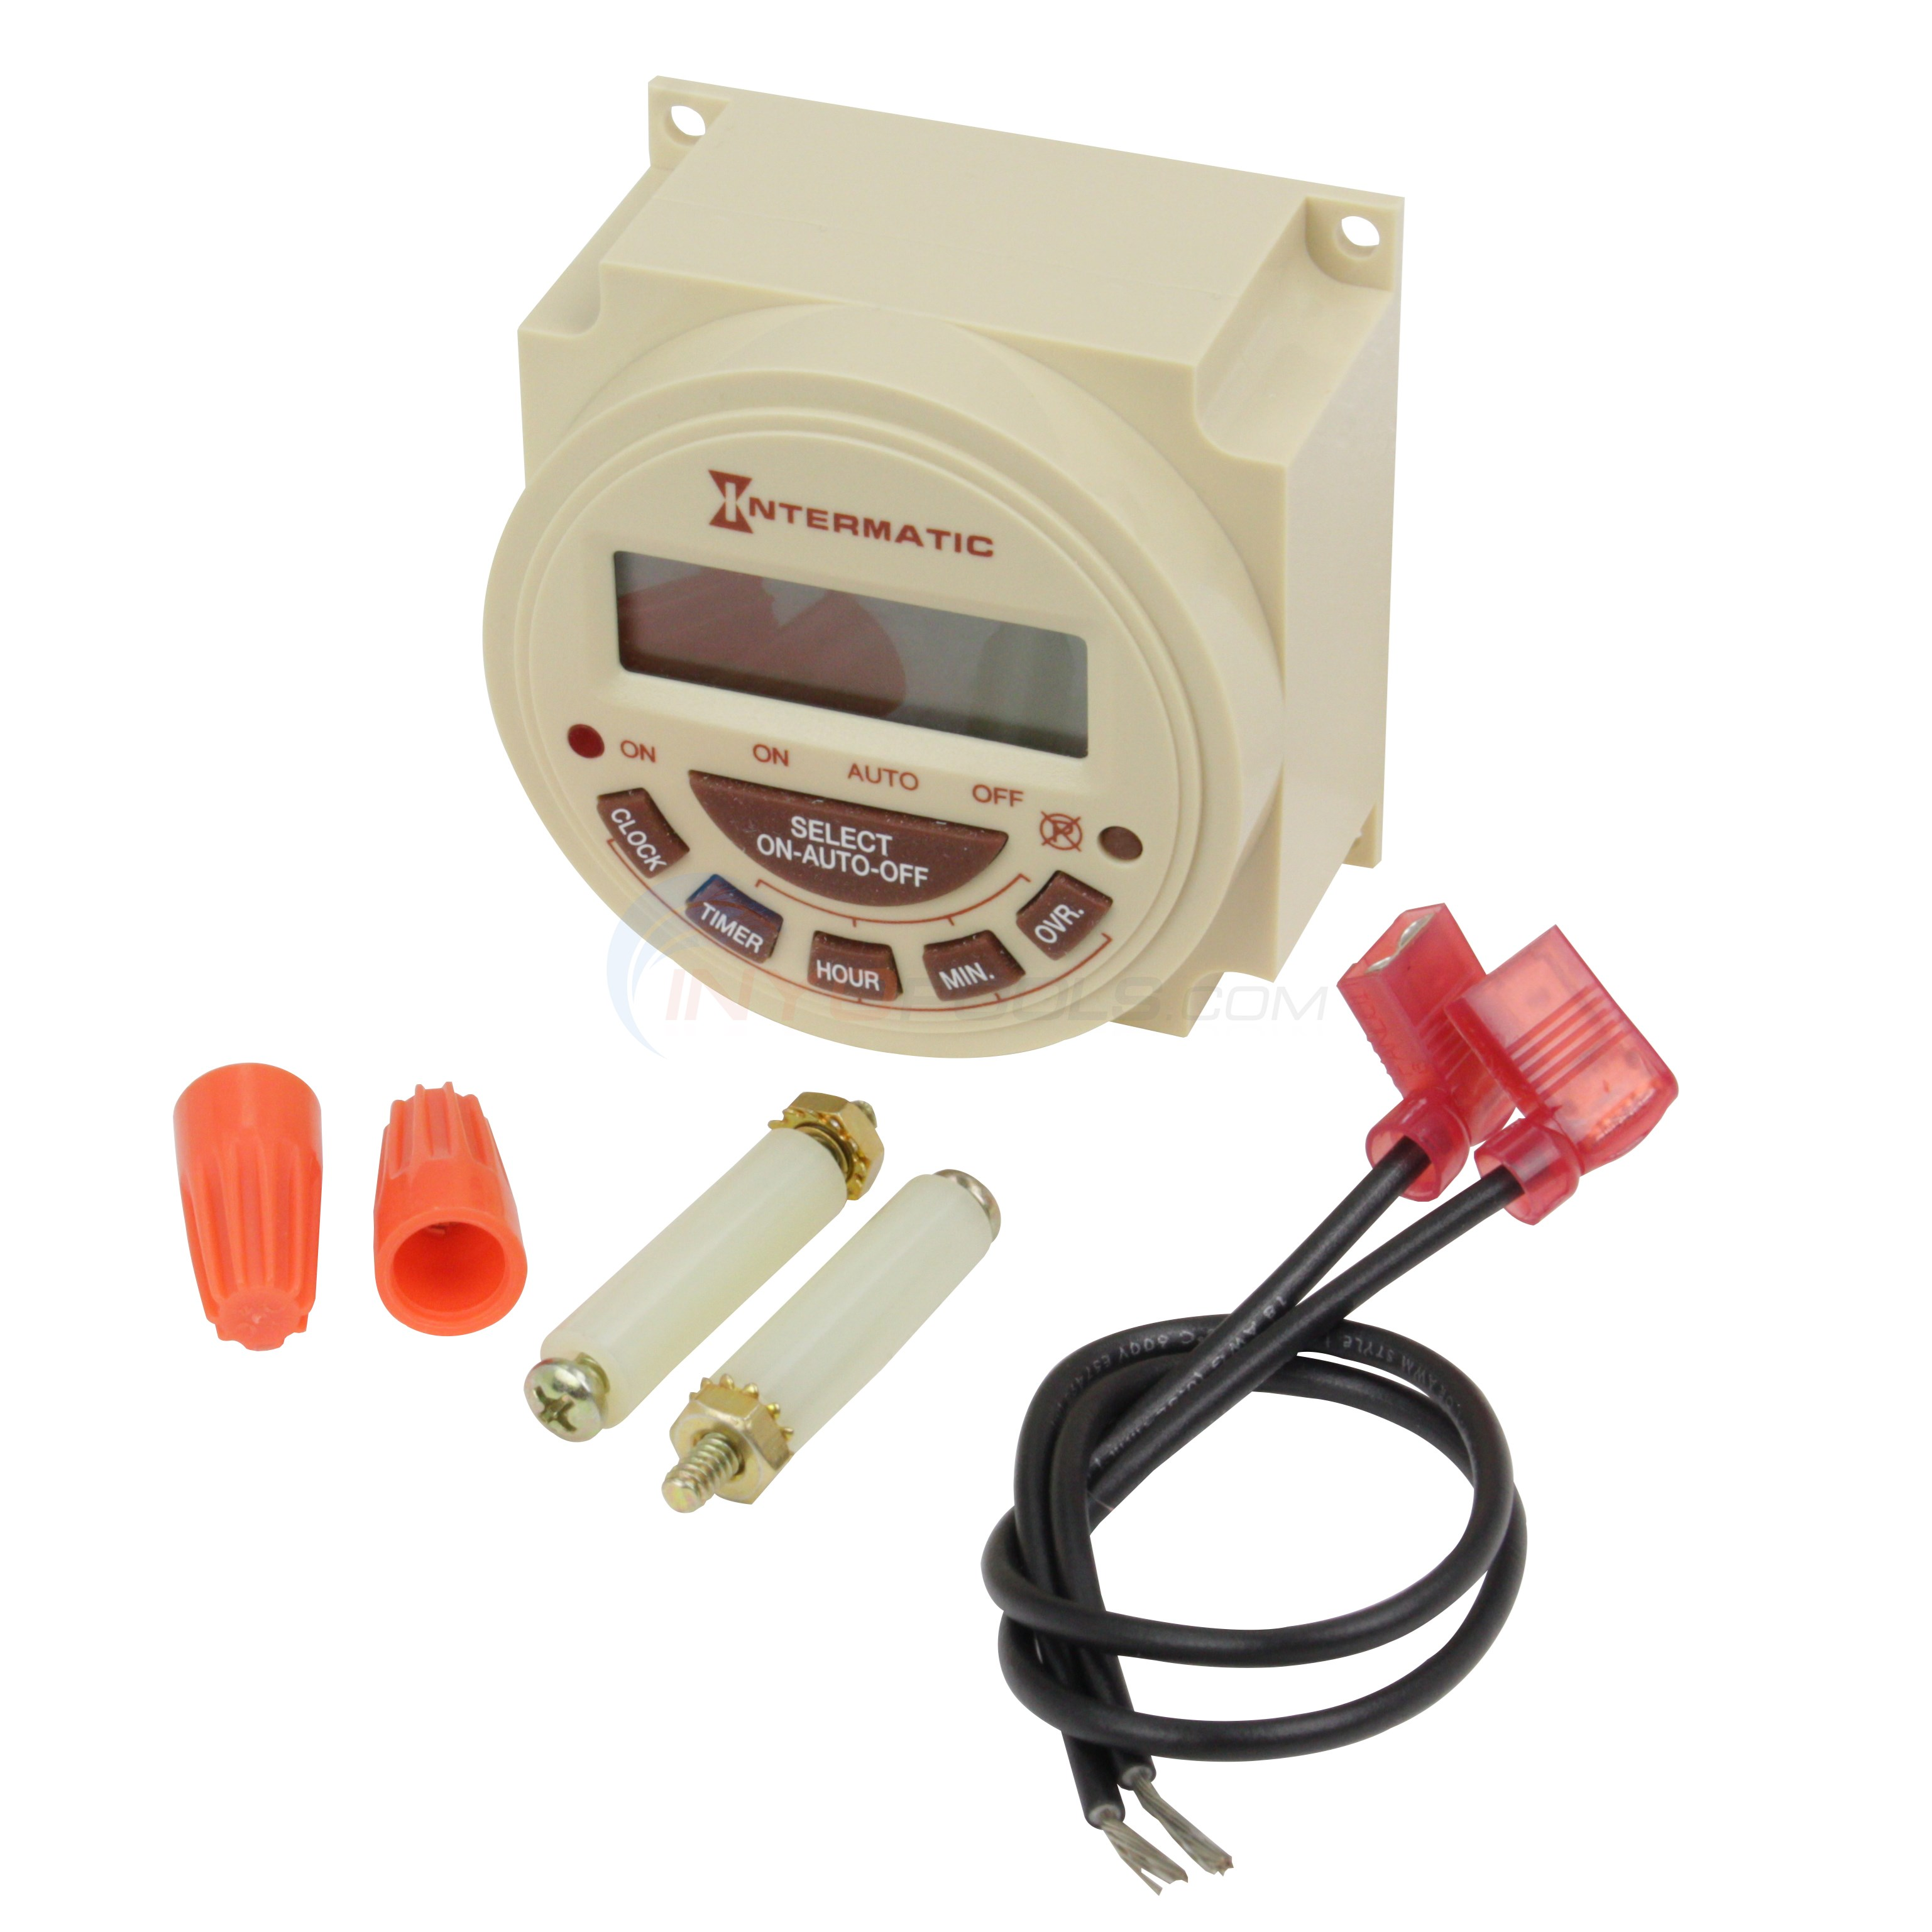 Intermatic Digital Timer Replacement Kit w/ Wire Leads - 120 Volt